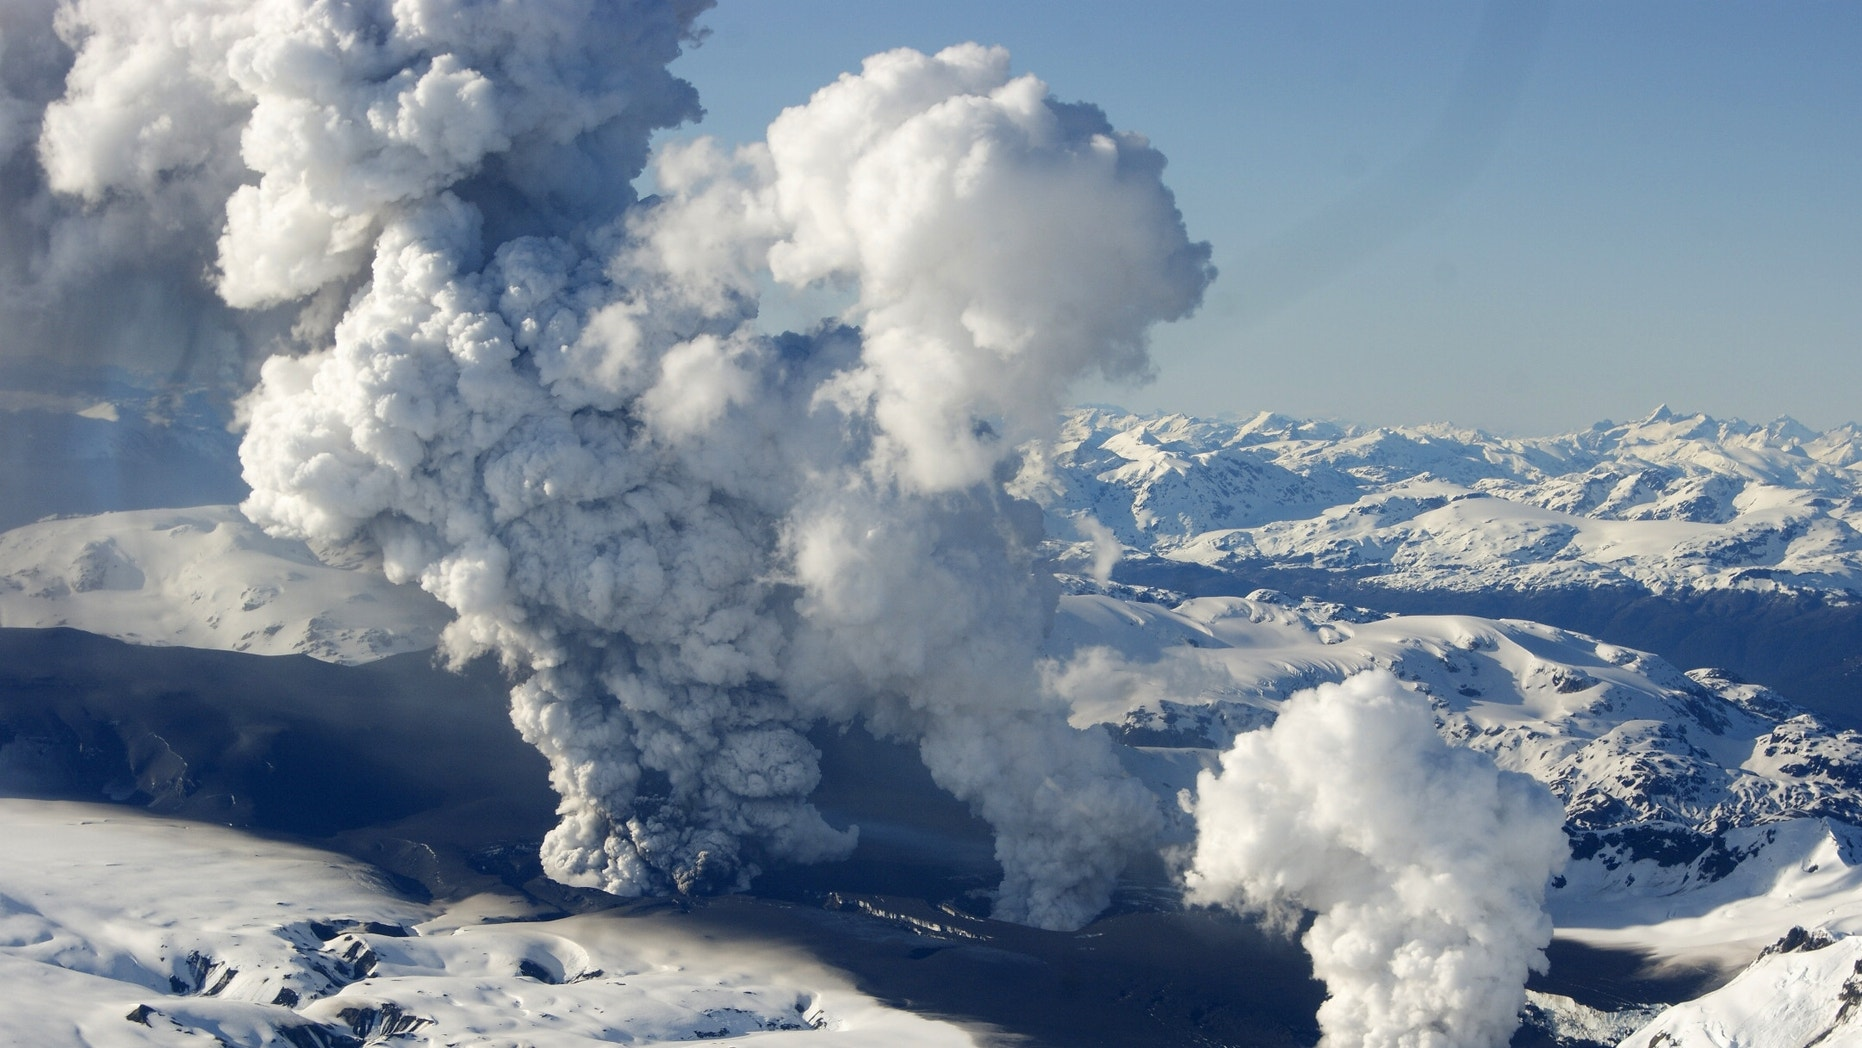 Oct. 27, 2011: Chile's Hudson Volcano released three huge columns of steam and ash that combined in a cloud more than 3 miles high.